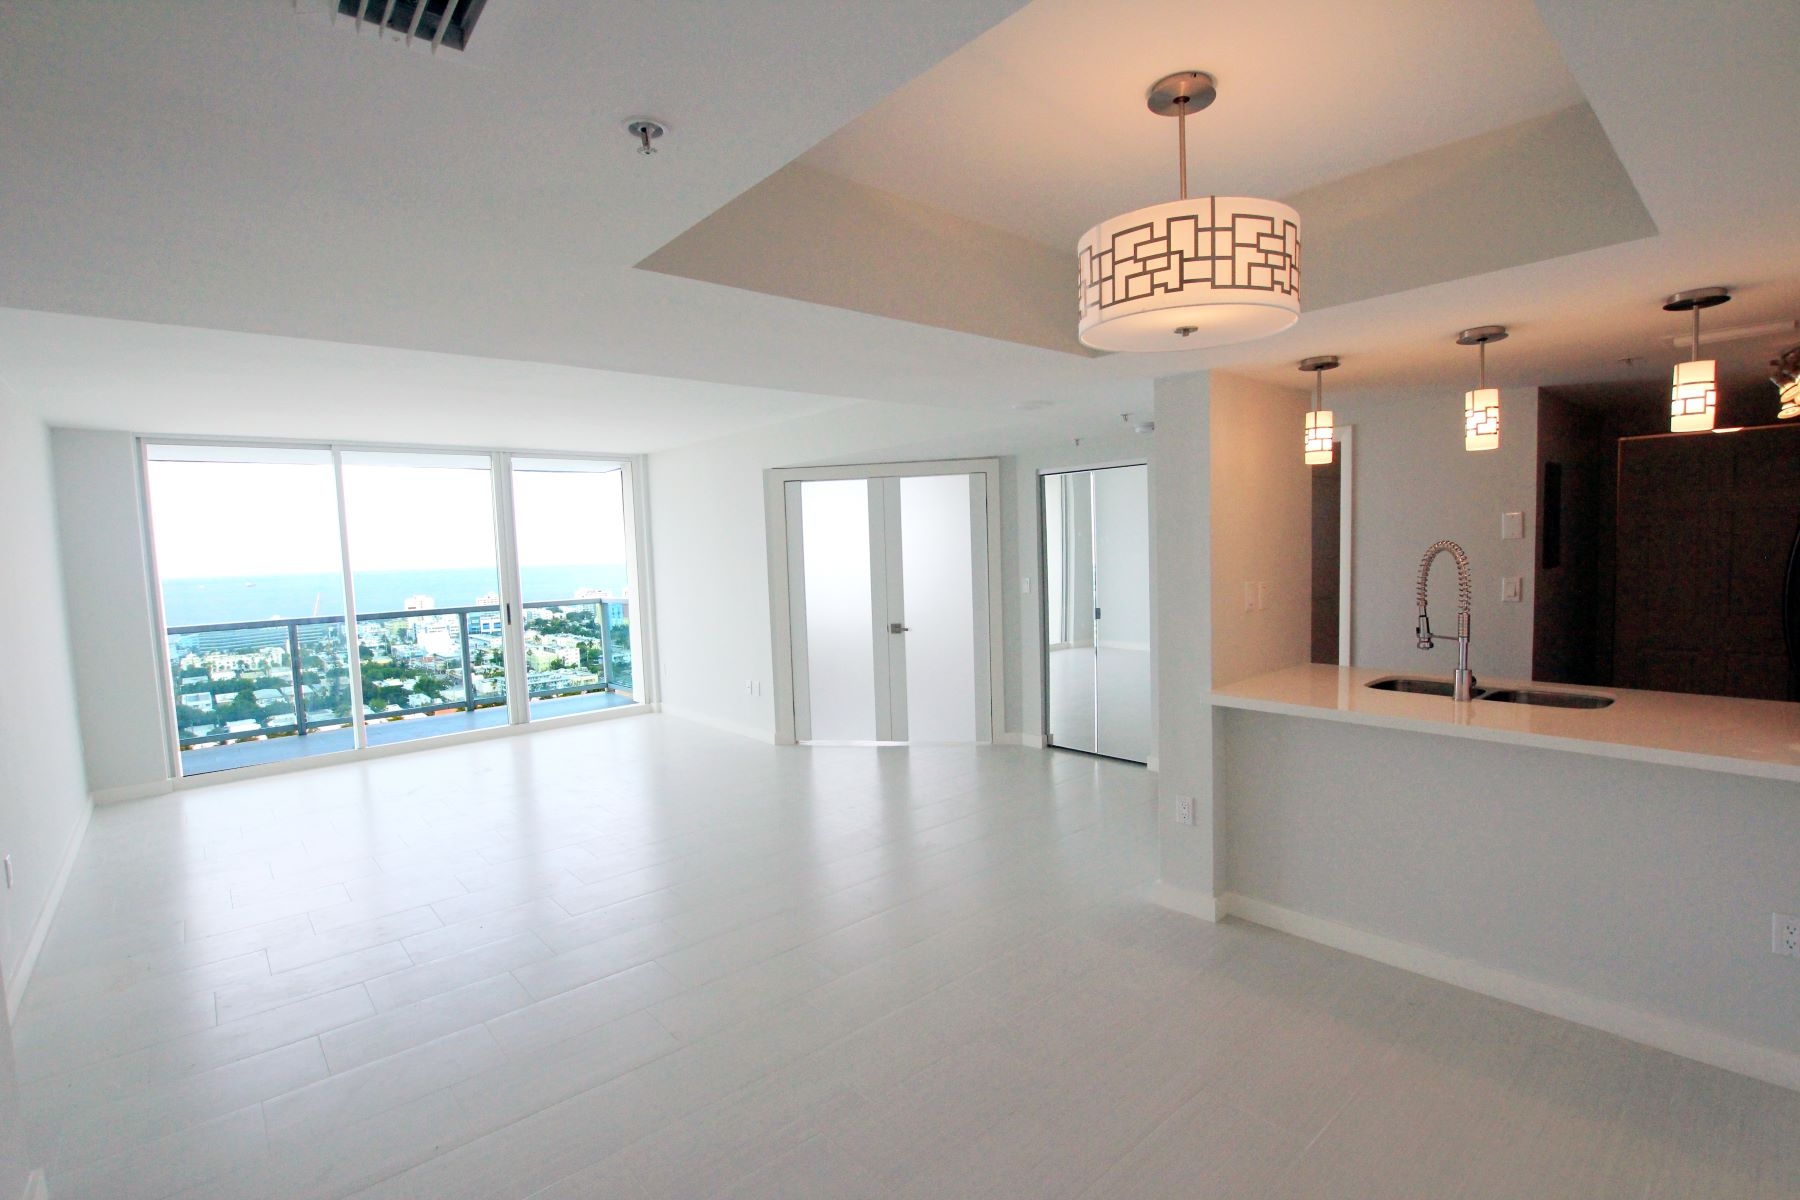 Condominium for Sale at 650 West Ave 650 West Ave 2906, Miami Beach, Florida, 33139 United States